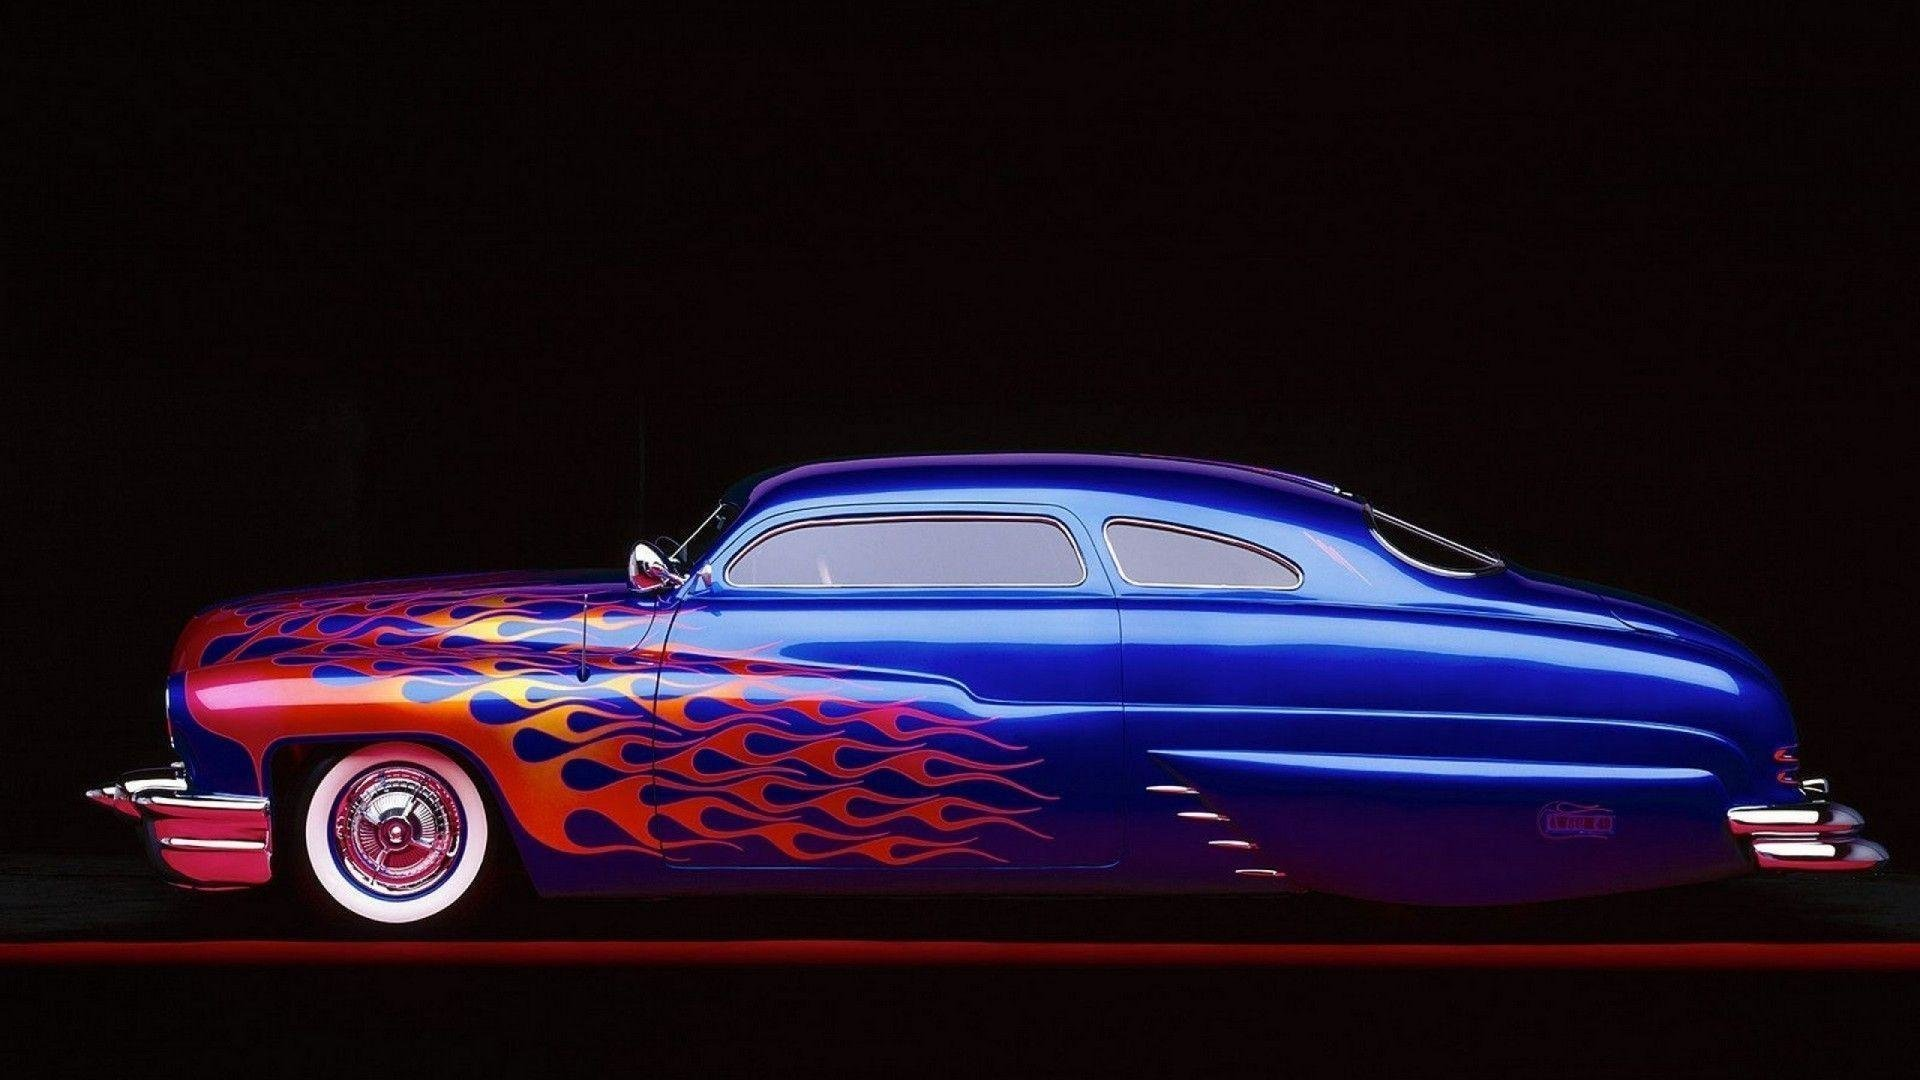 Latest Lowrider Cars Wallpapers Wallpaper Cave Free Download